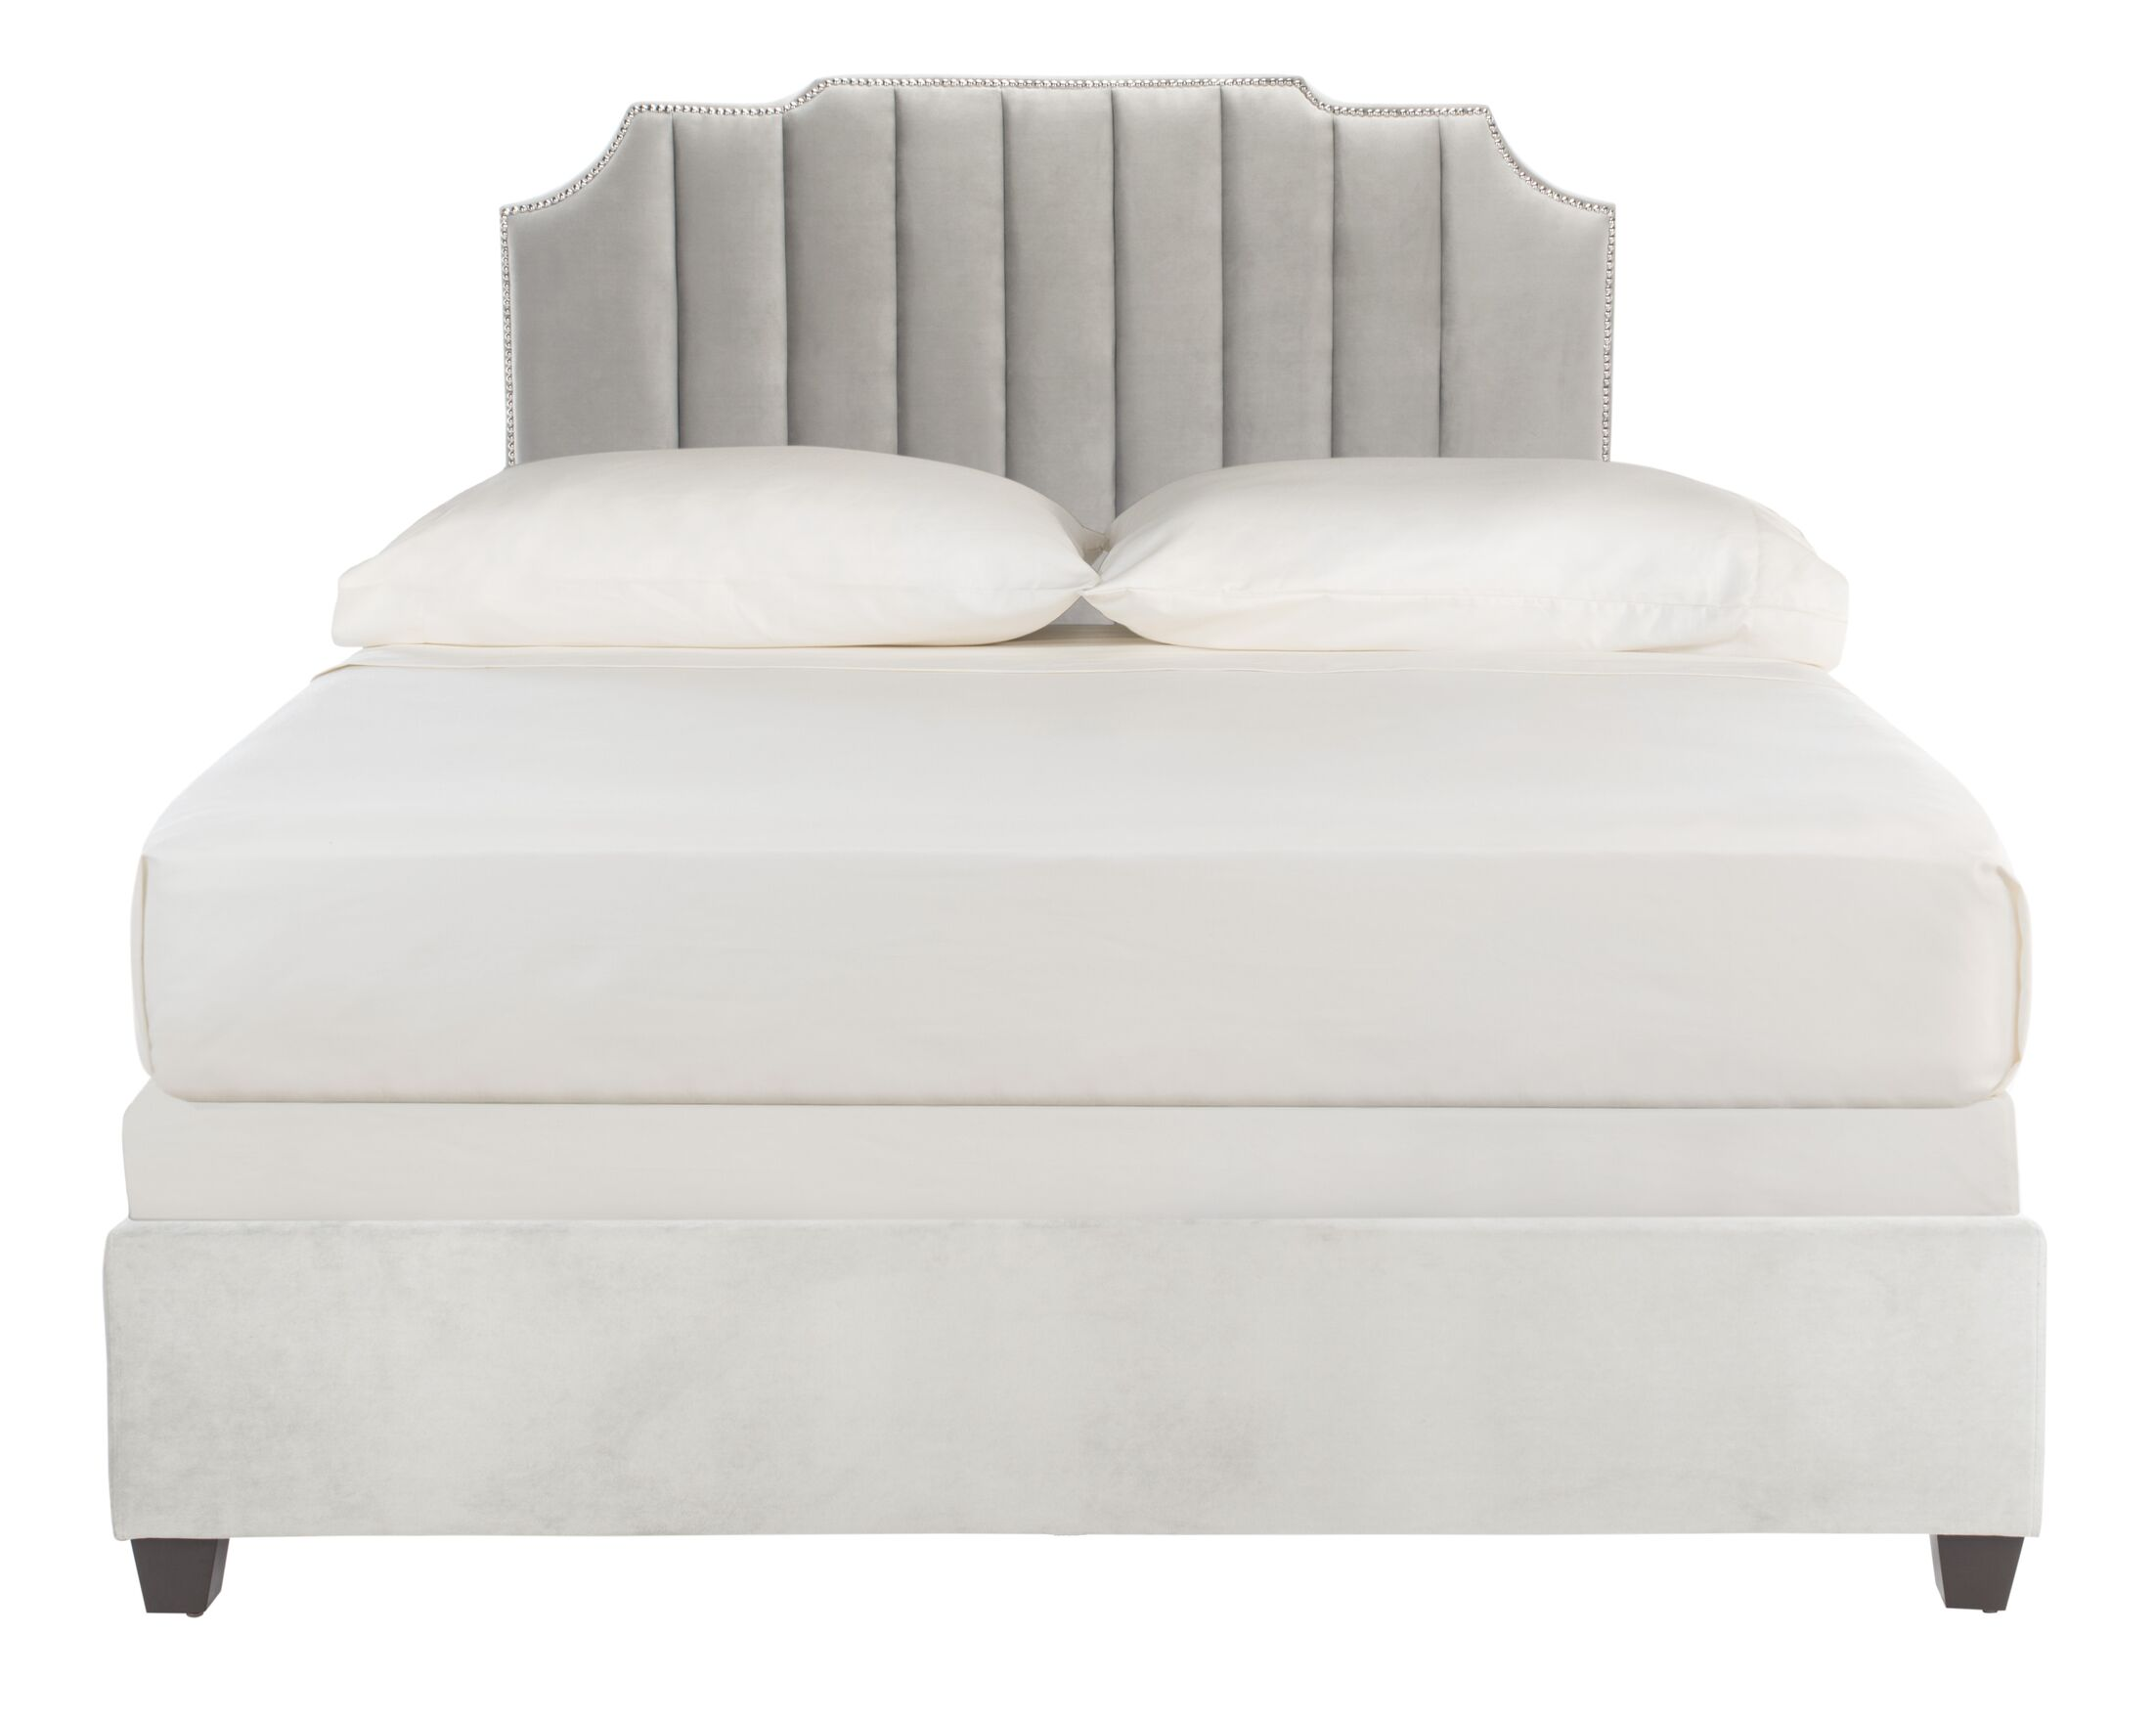 Musgrave Upholstered Panel Bed Color: Gray, Size: Full